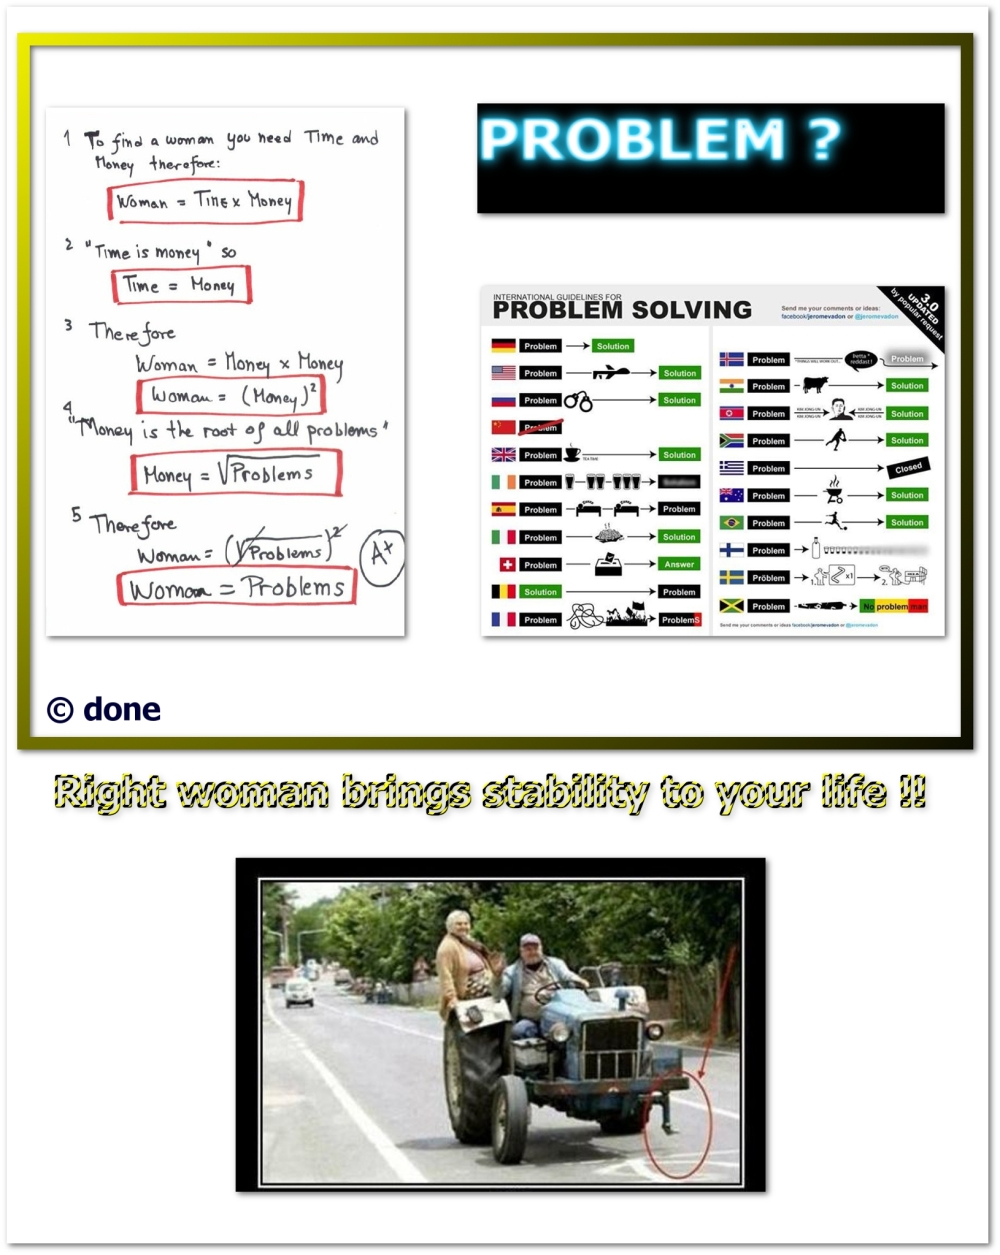 problem solving, right woman, time, money